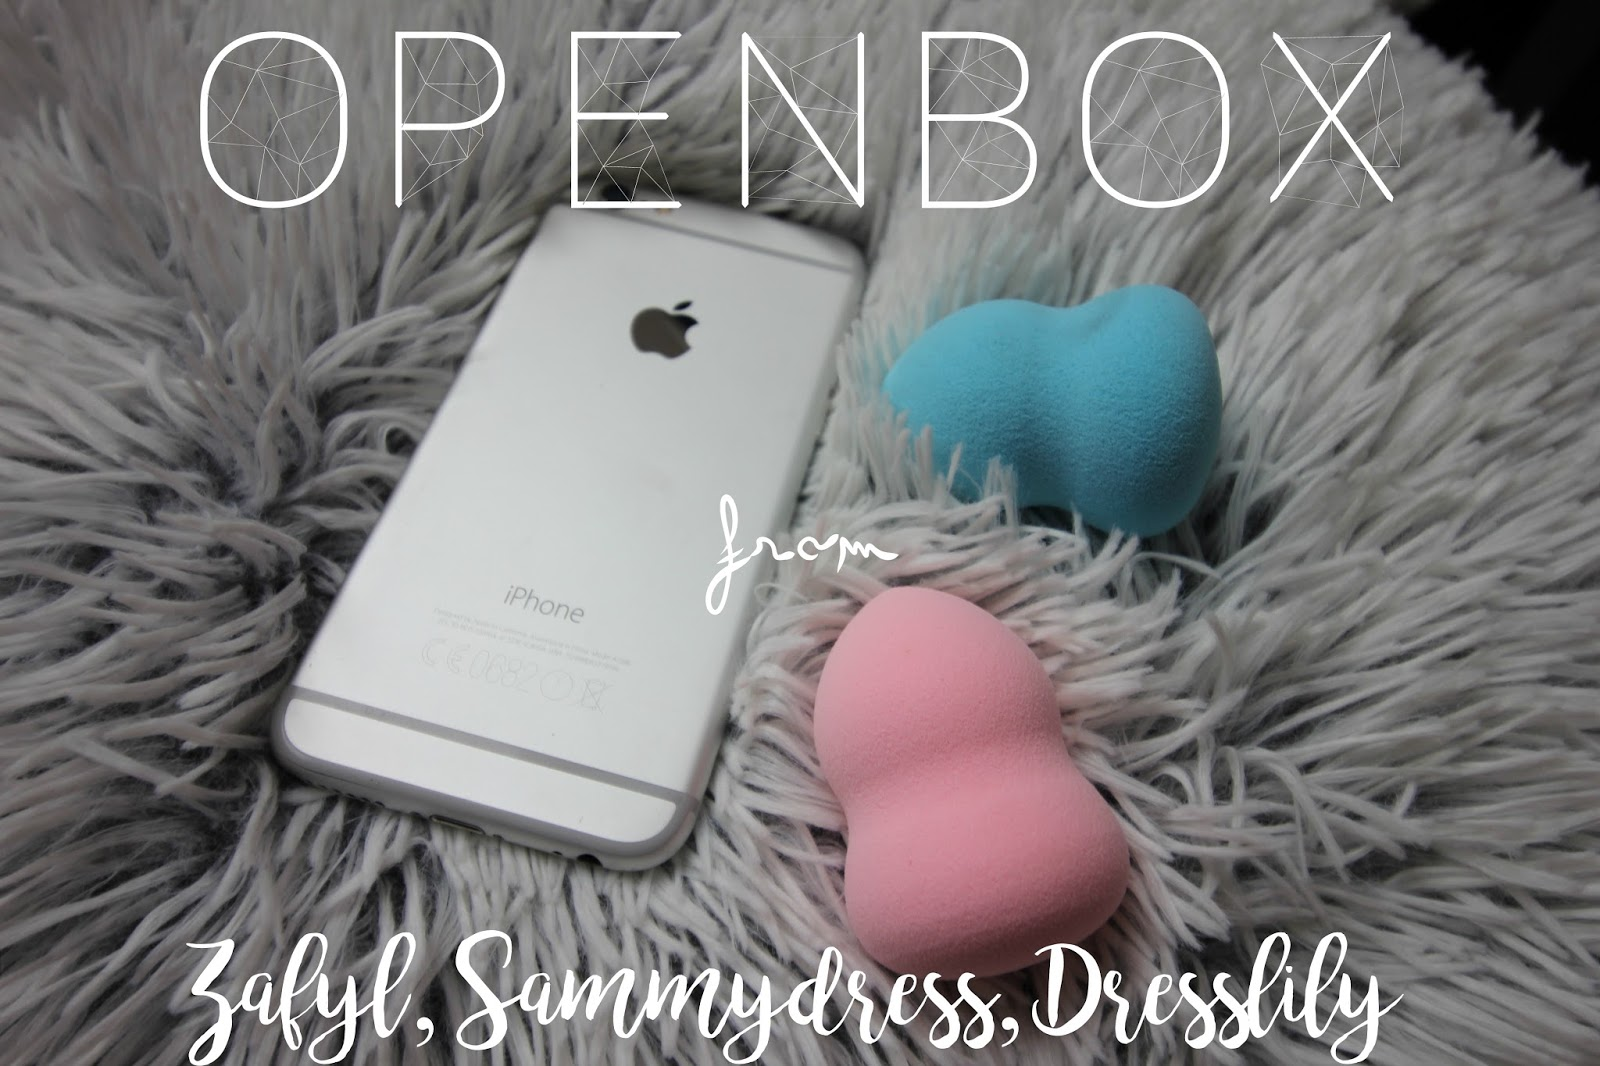 OPENBOX from Zaful, Sammydress, Dresslily - SharpeeE